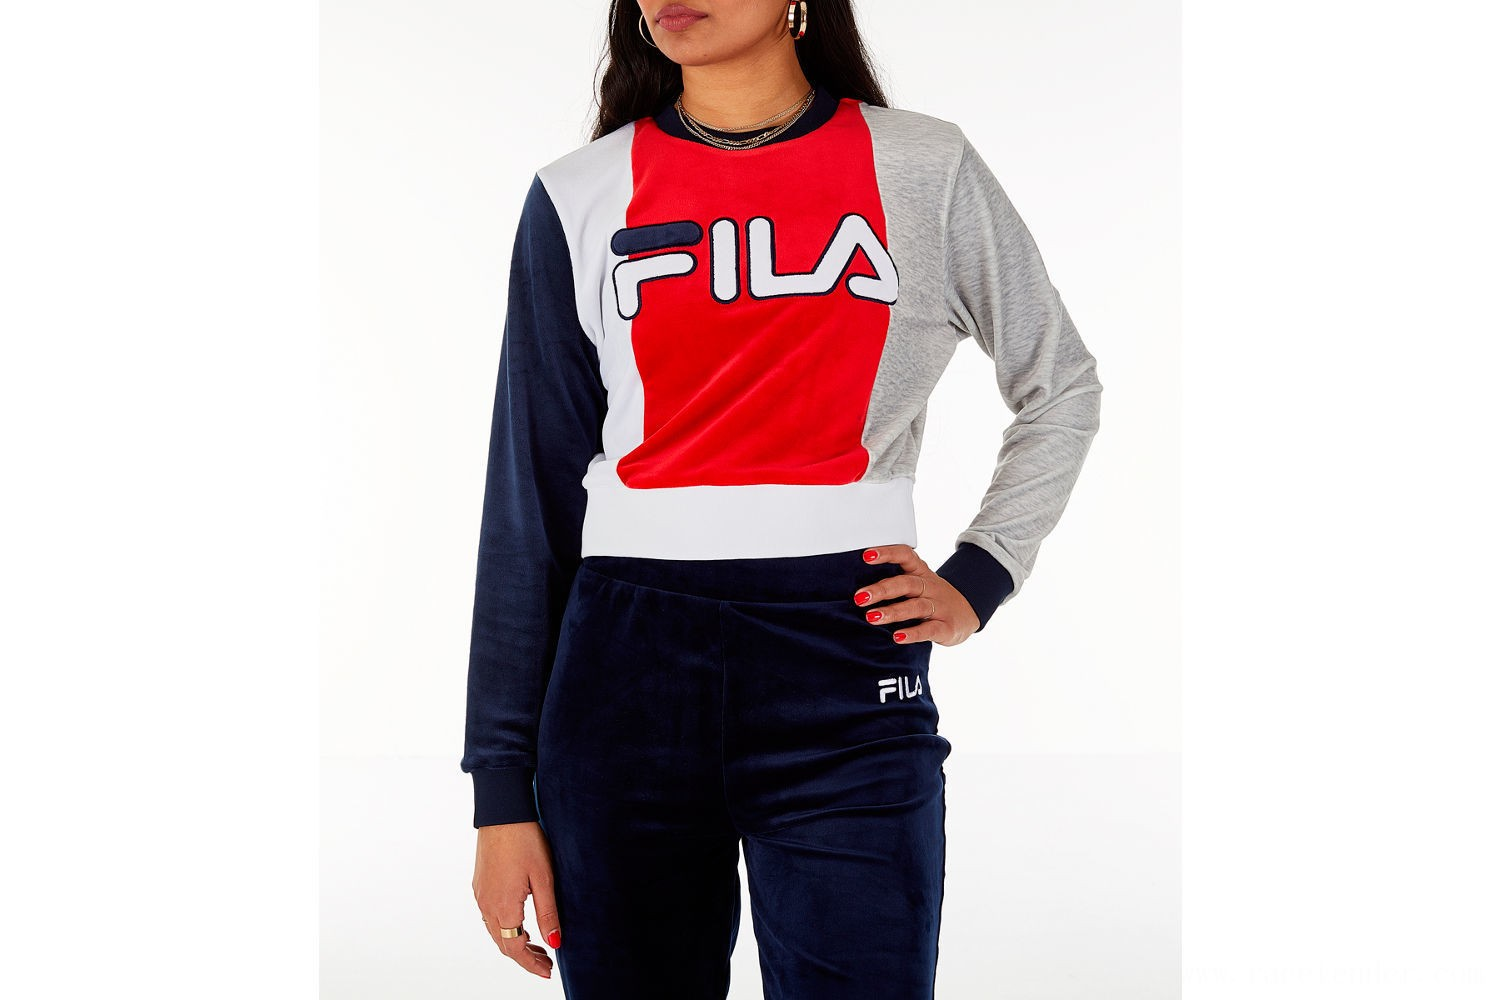 Fila Women's Antonietta Crop Velour Sweatshirt - Red/White/Blue